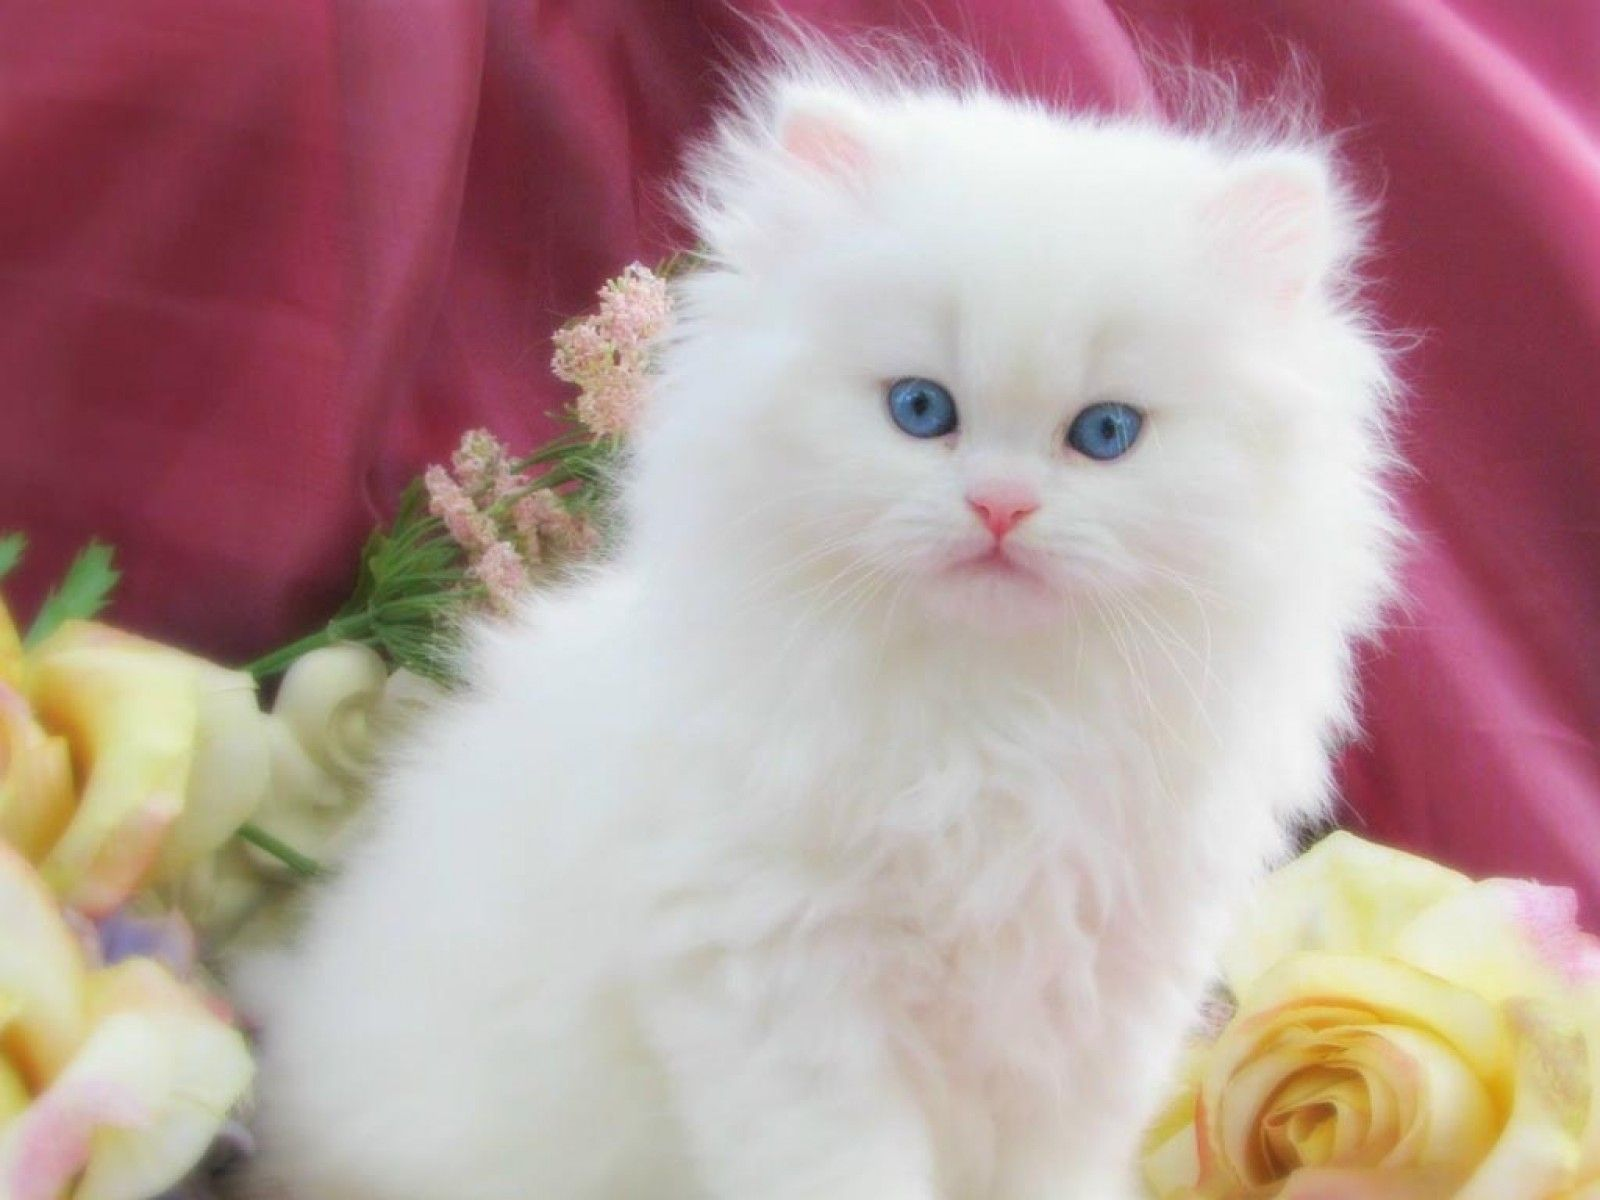 A Cute Fluffy Kitten With Blue Eyes Pics Of Cute Cats Cute Cats And Dogs Cute Cat Wallpaper